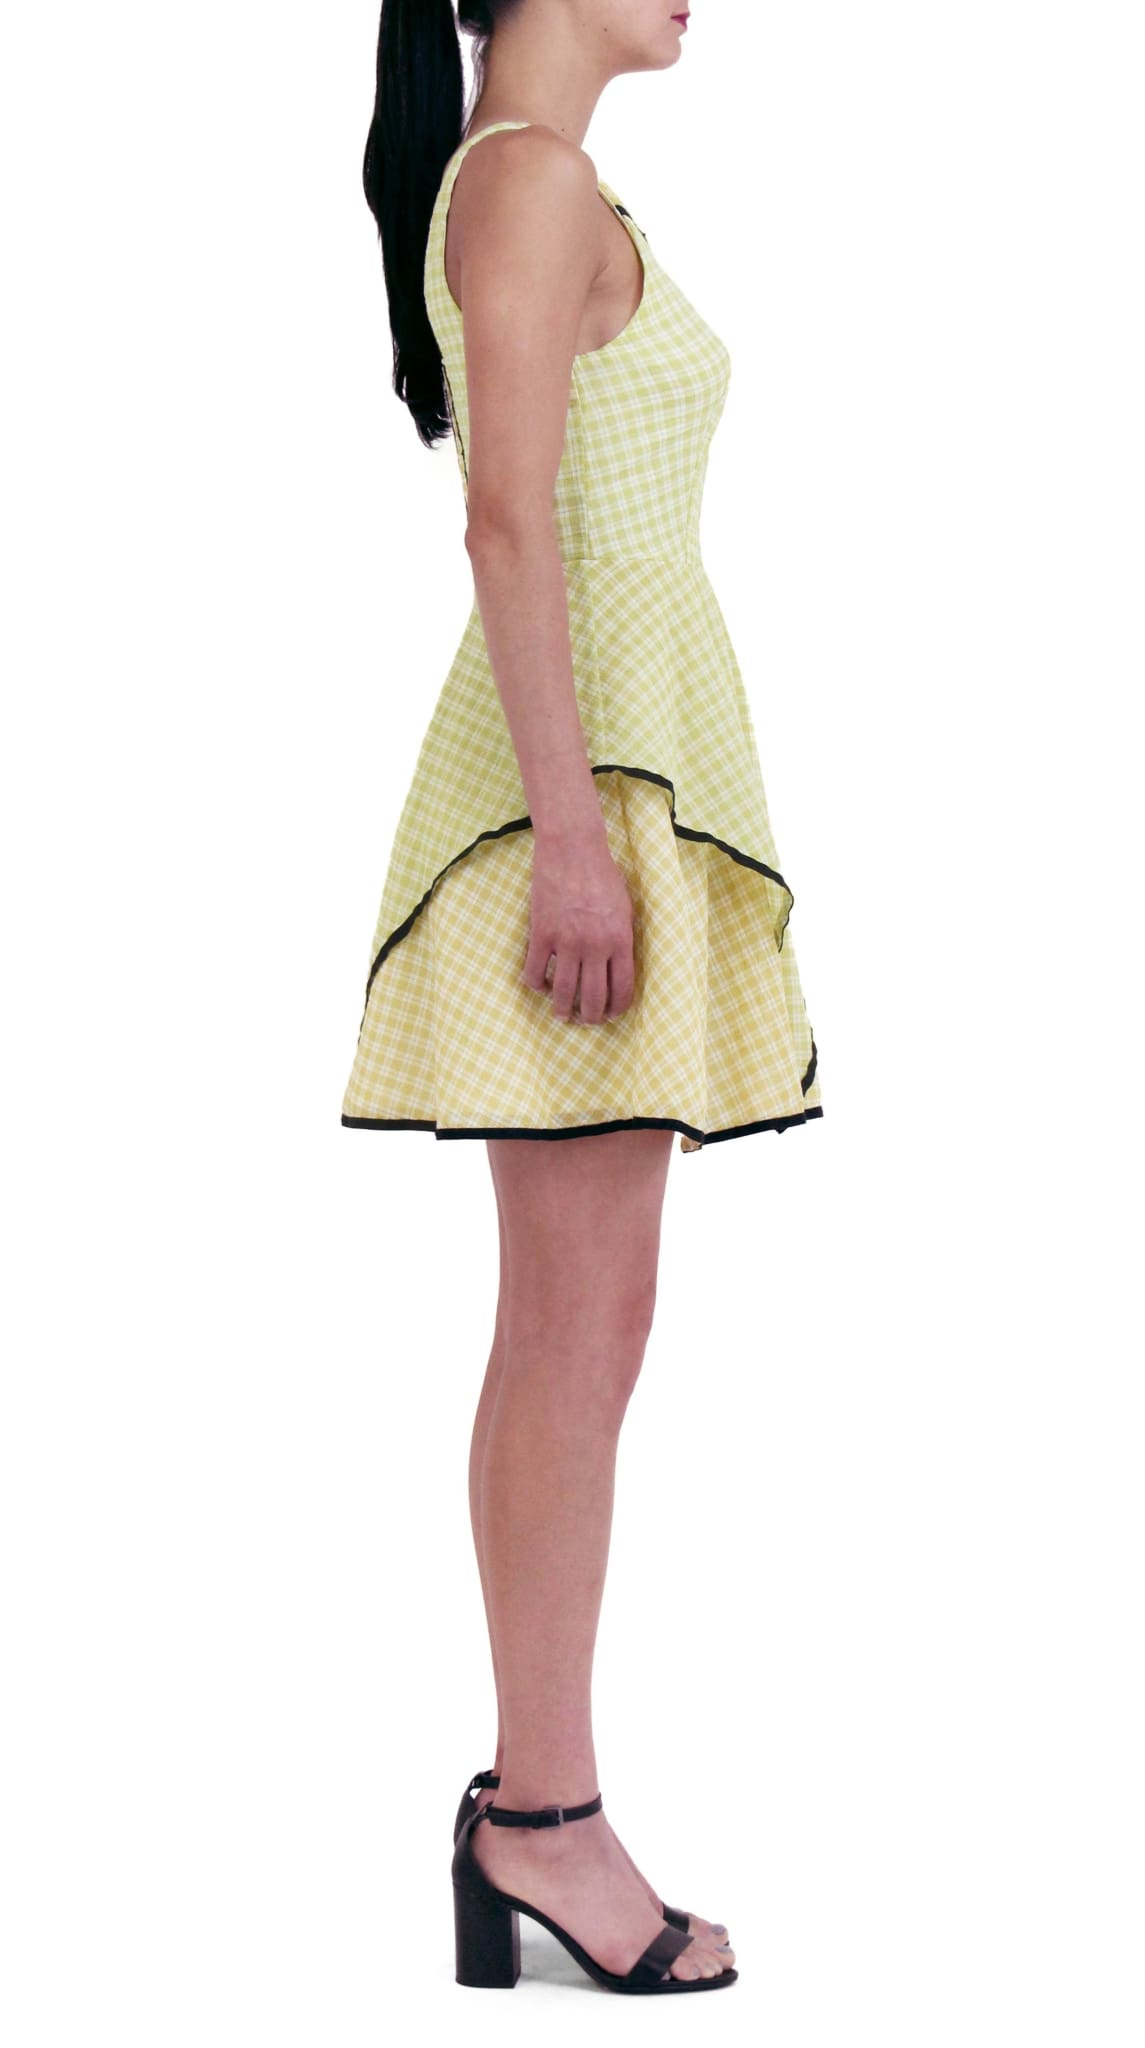 Yellow Beehive Dress by Meghan Hughes Nineteenth Amendment